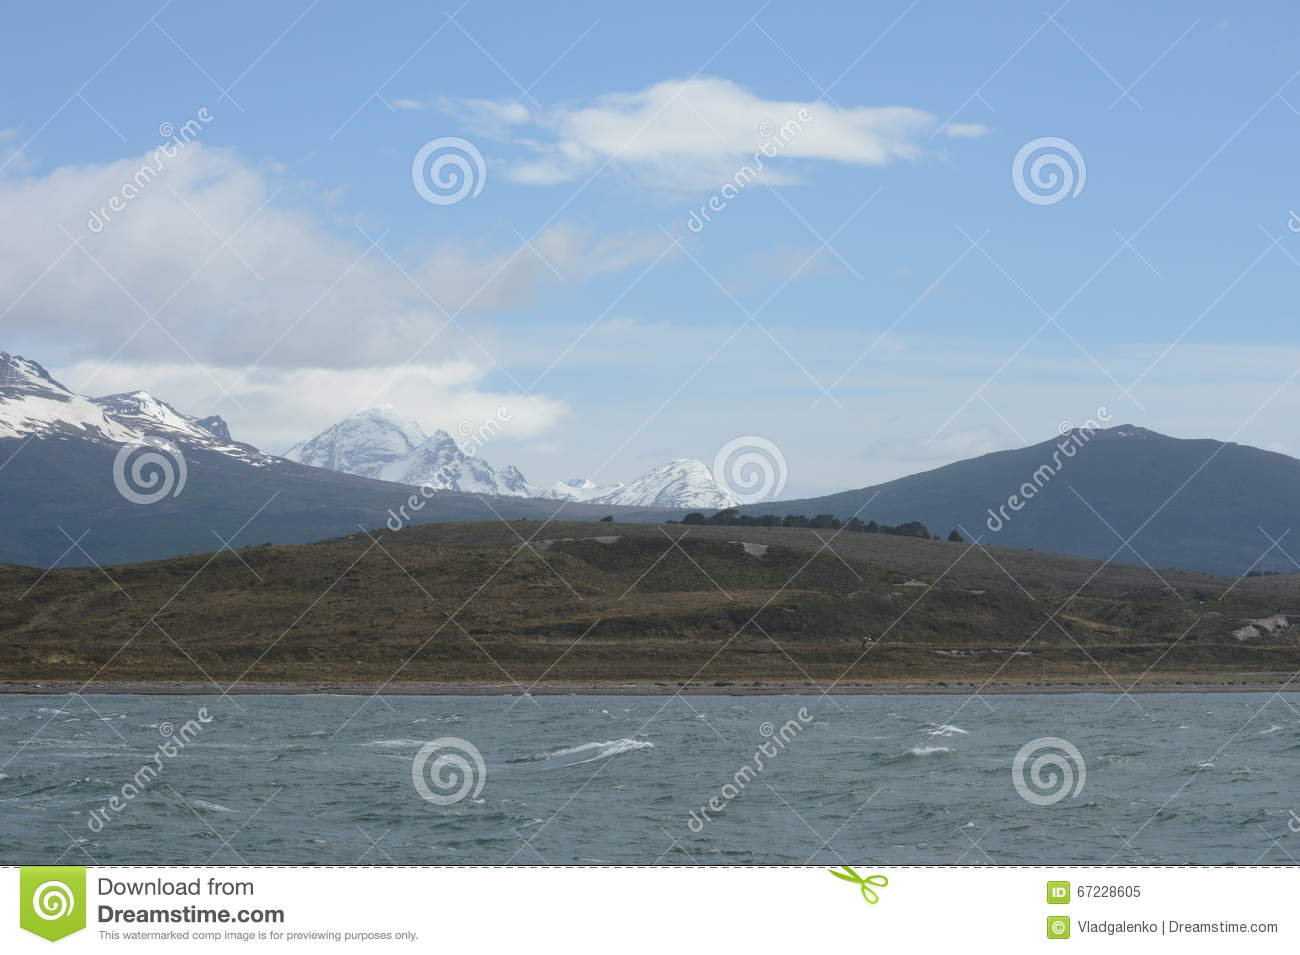 Download The Beagle Channel Separating The Main Island Of The Archipelago Of Tierra Del Fuego And Lying To The South Of The Island. Stock Image - Image of coast, chile: 67228605